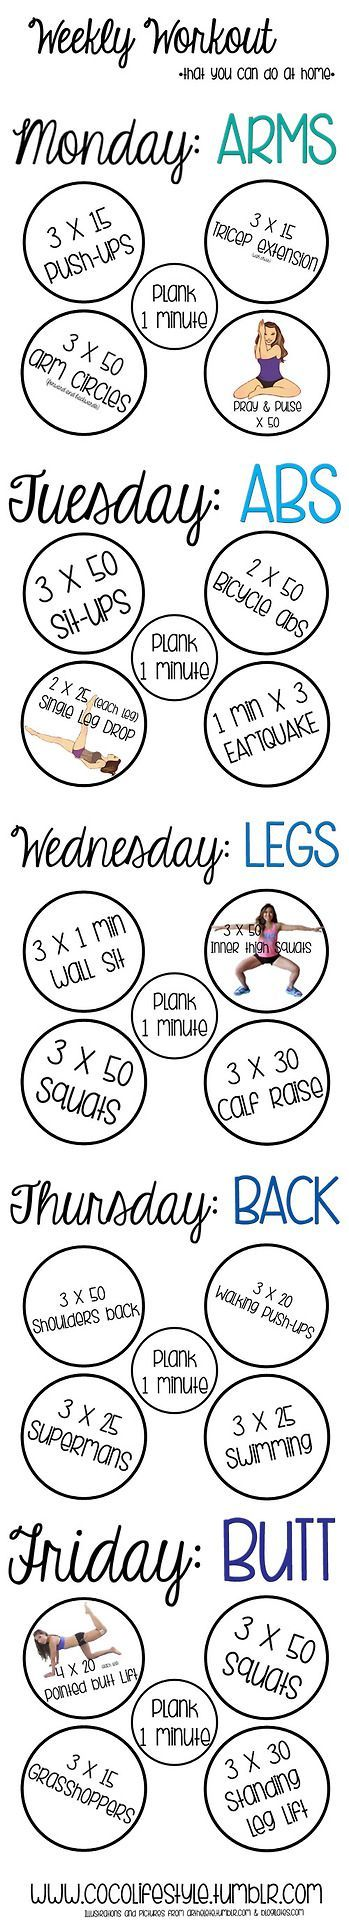 25 Best Ideas About At Home Workouts On Pinterest Quick Daily Workouts Workout Equipment For Home And Back Toning